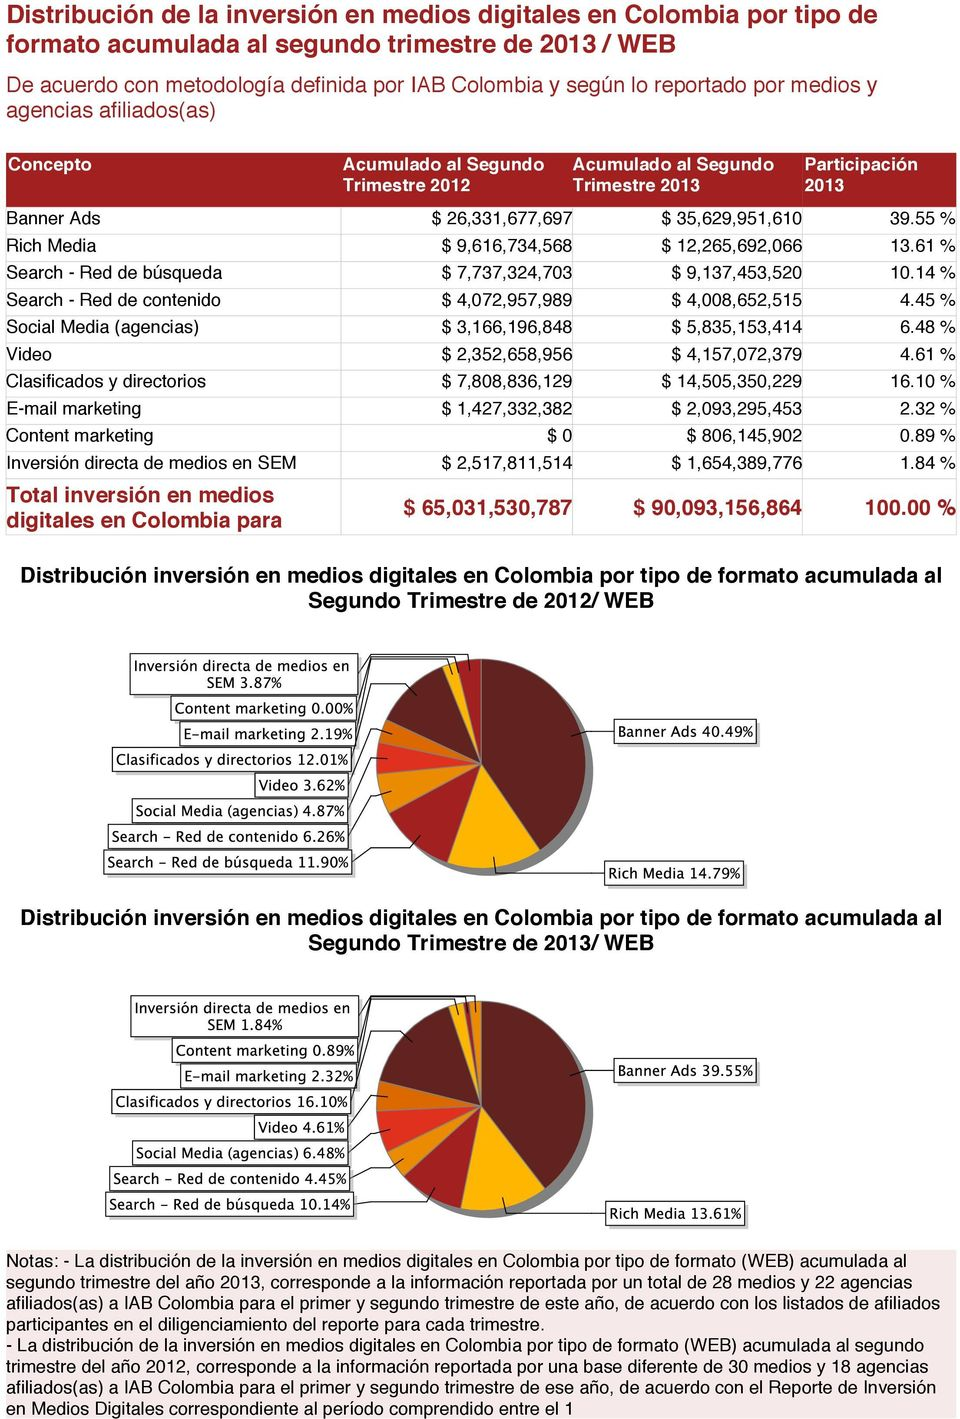 61 % Search - Red de búsqueda $ 7,737,324,703 $ 9,137,453,520 10.14 % Search - Red de contenido $ 4,072,957,989 $ 4,008,652,515 4.45 % Social Media (agencias) $ 3,166,196,848 $ 5,835,153,414 6.